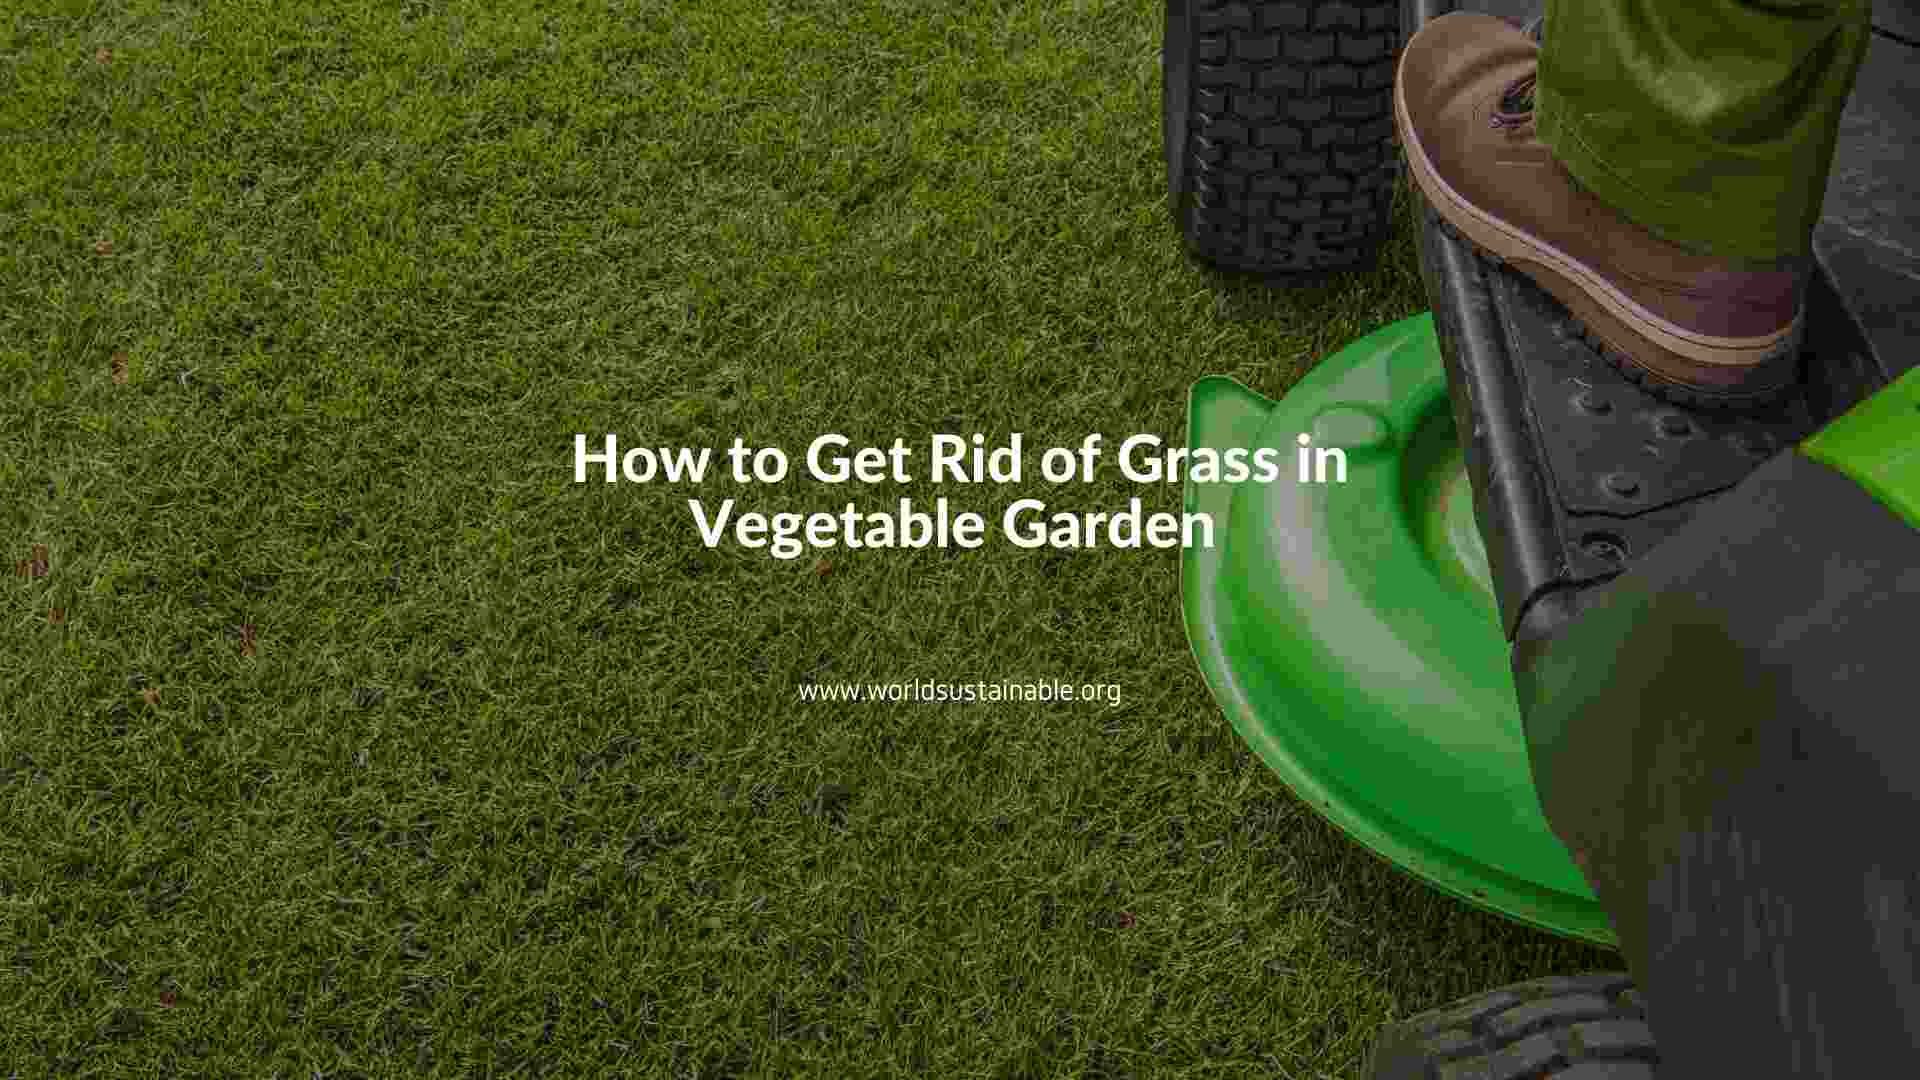 how-to-get-rid-of-grass-in-vegetable-garden